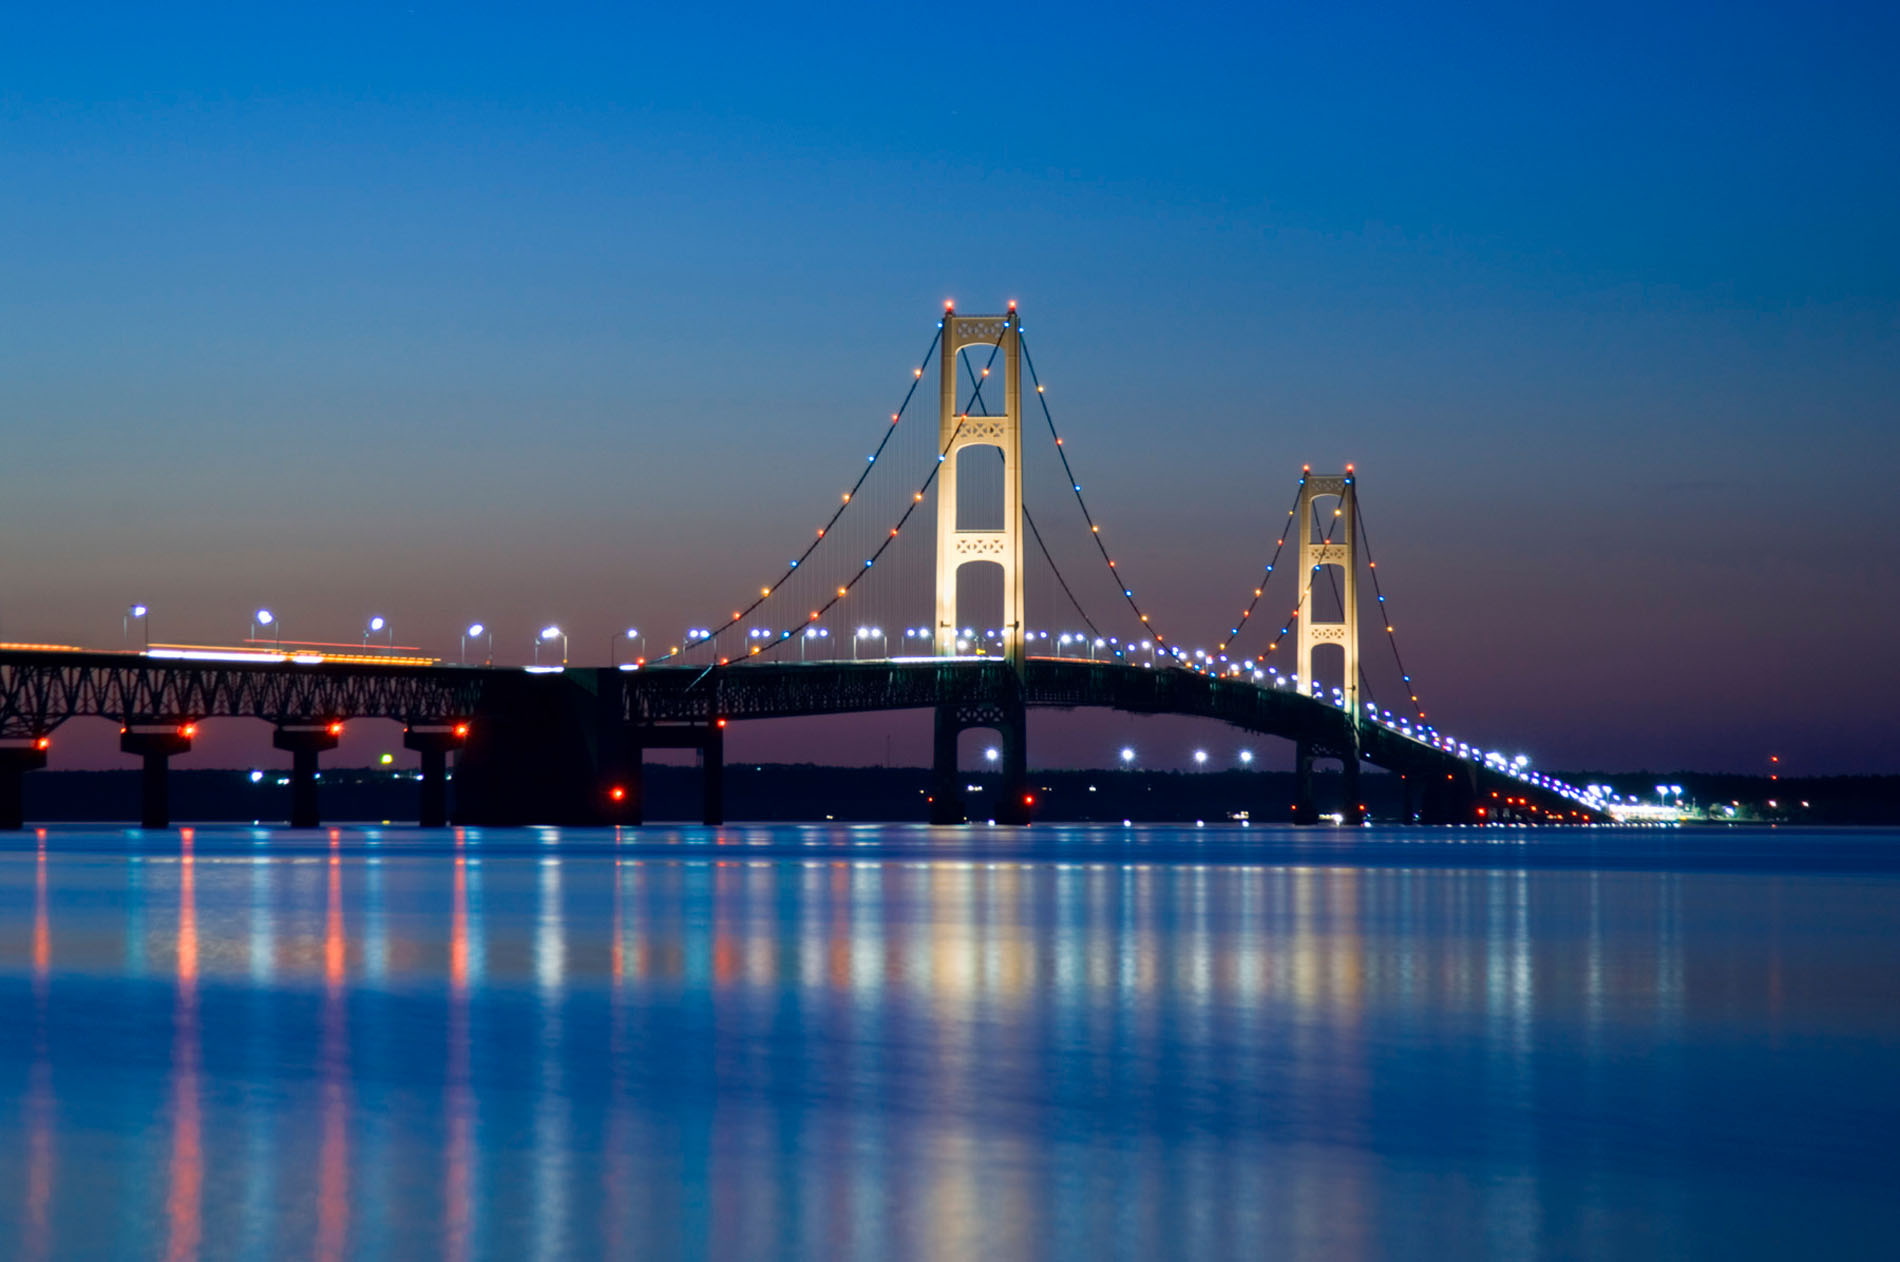 Mackinac Bridge Authority, St. Ignace Michigan